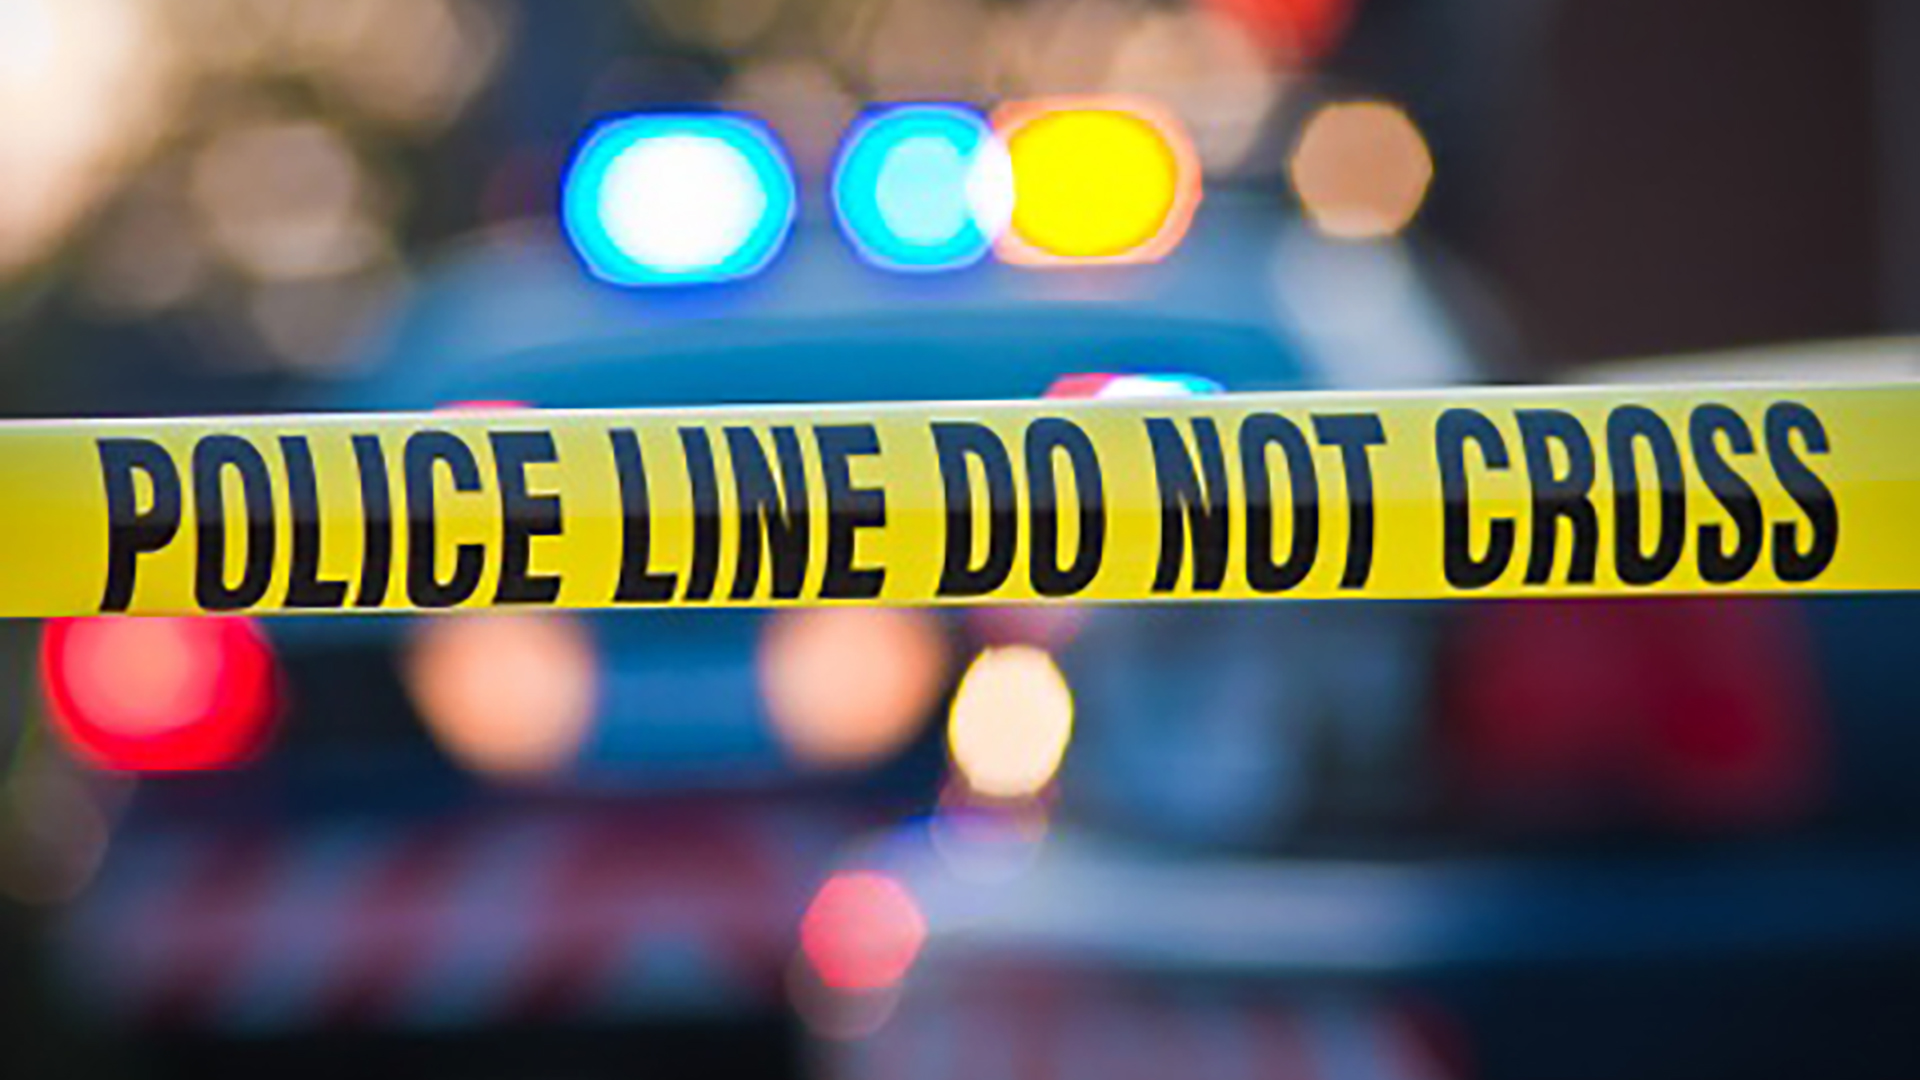 Store clerk stabbed in attempted robbery